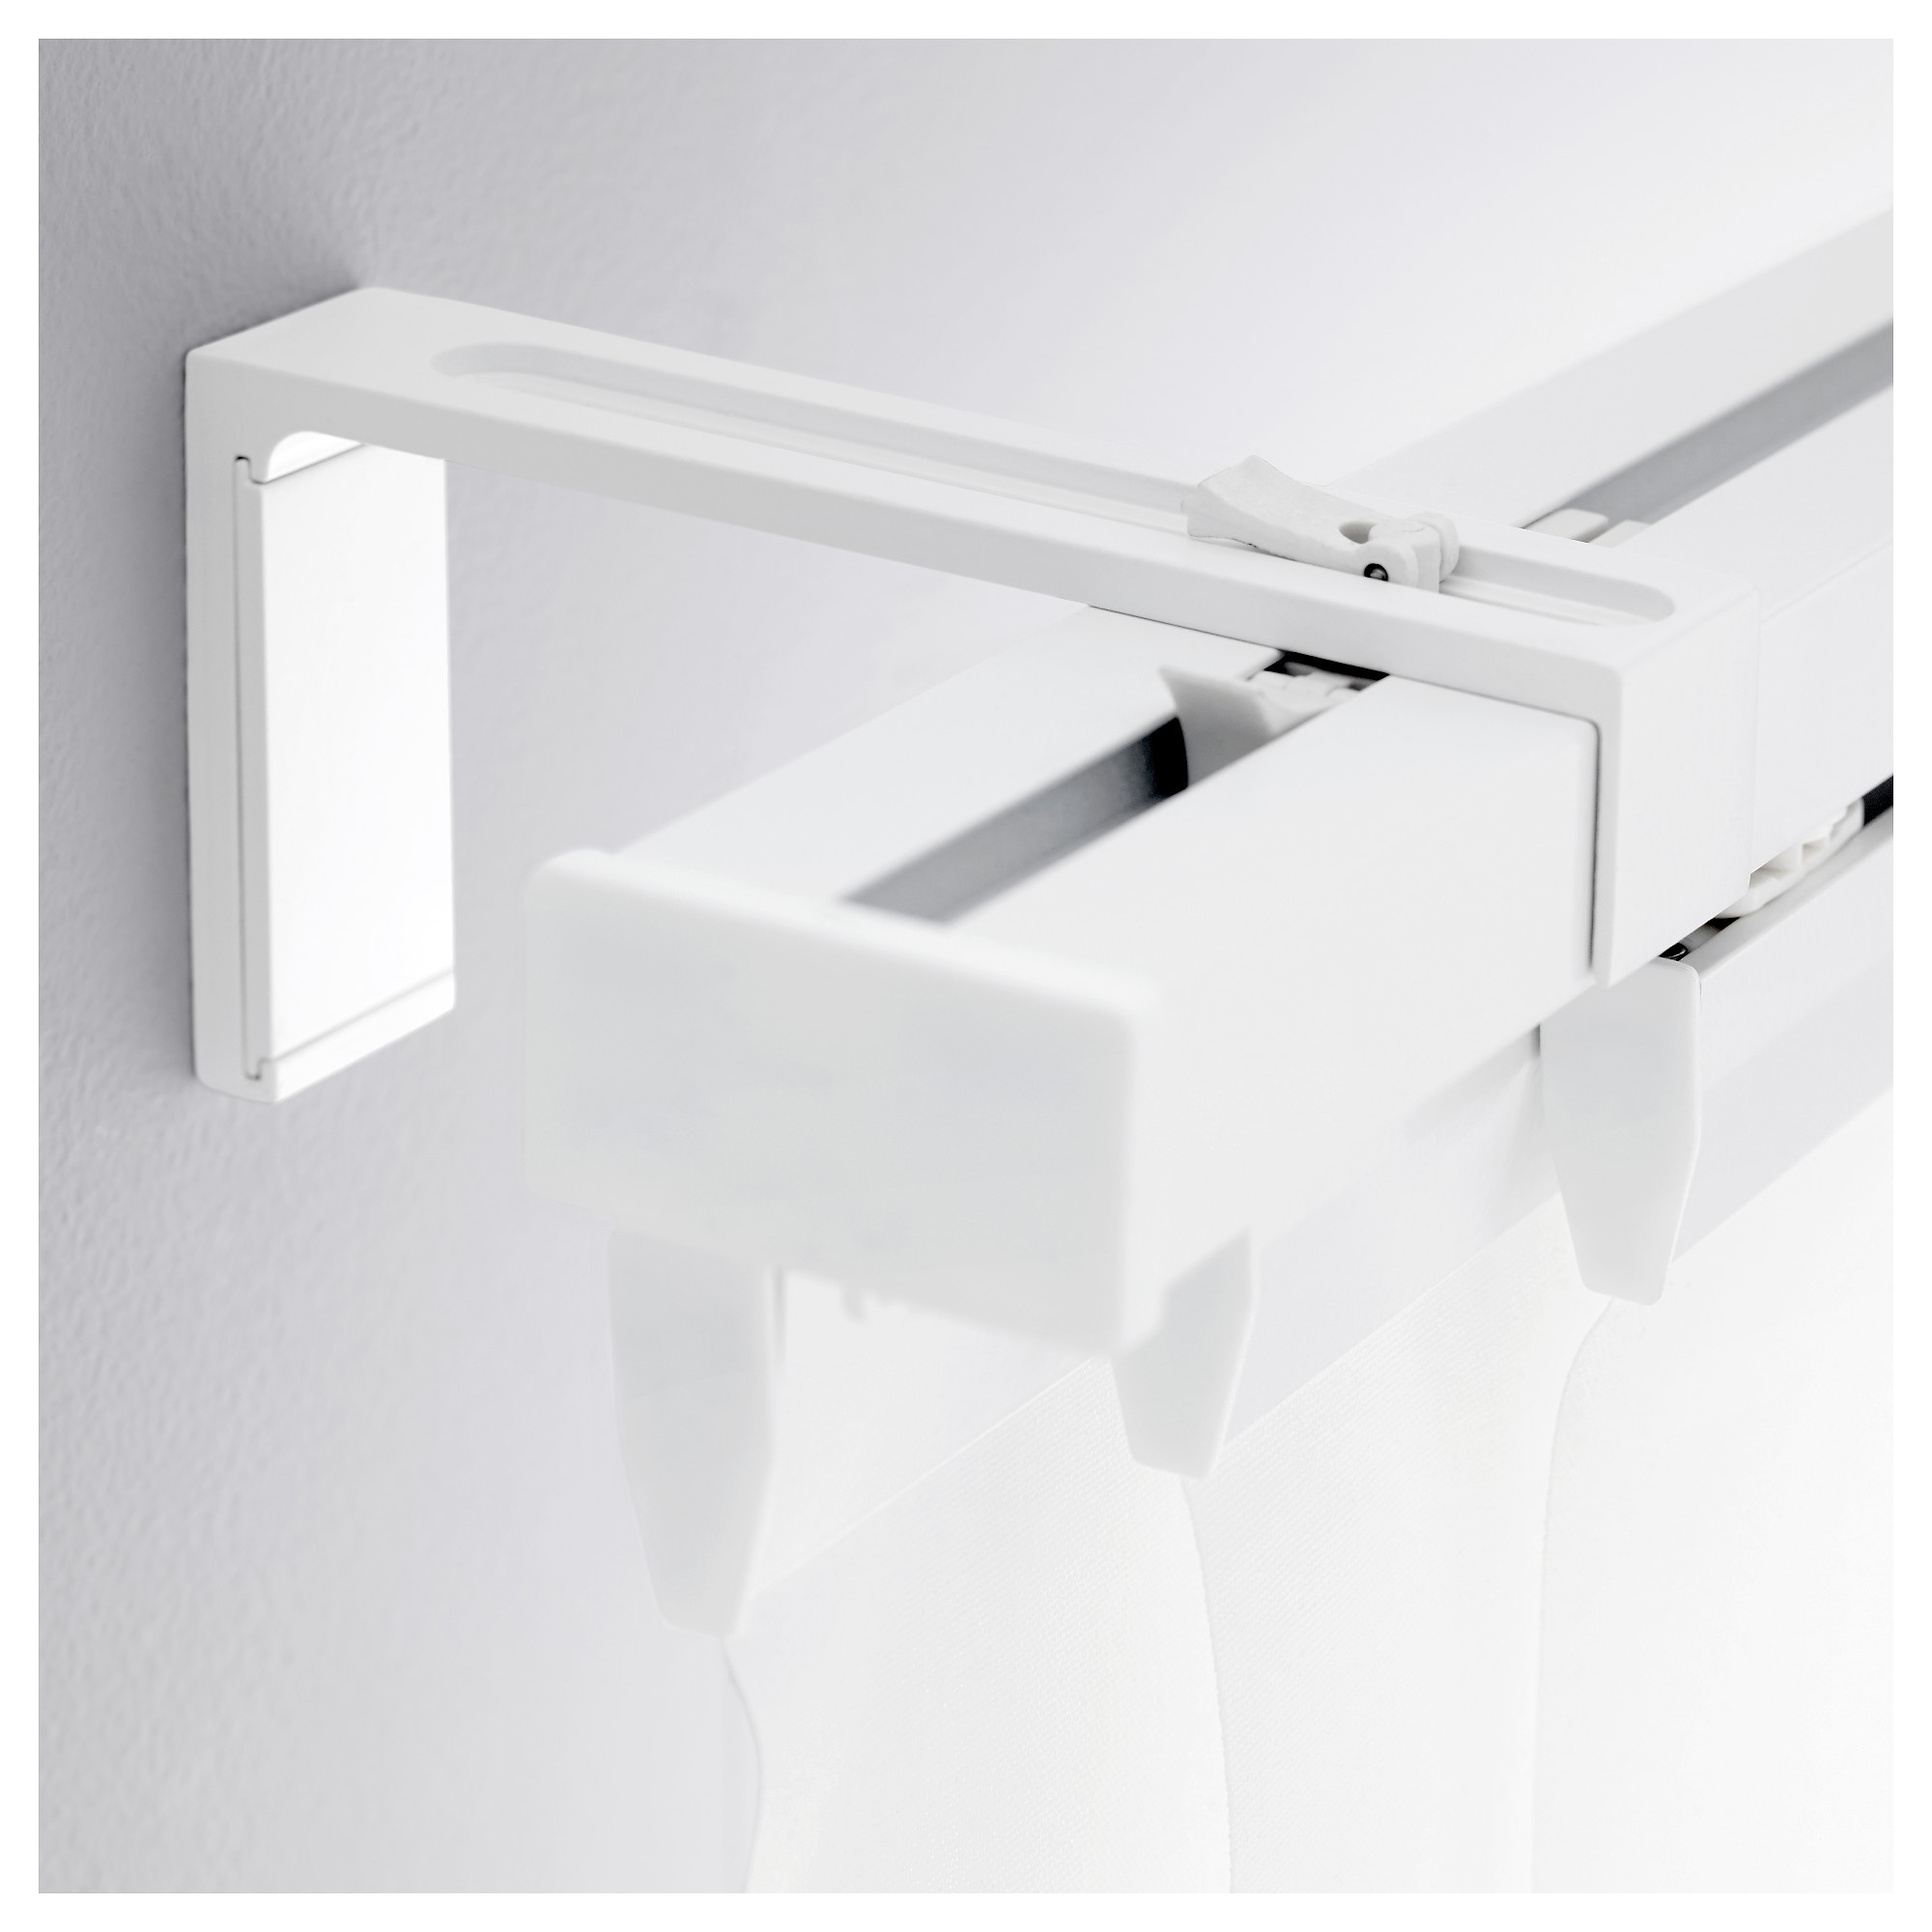 Vidga Wall Bracket White Length 4 ¾ Max Load 22 Lb